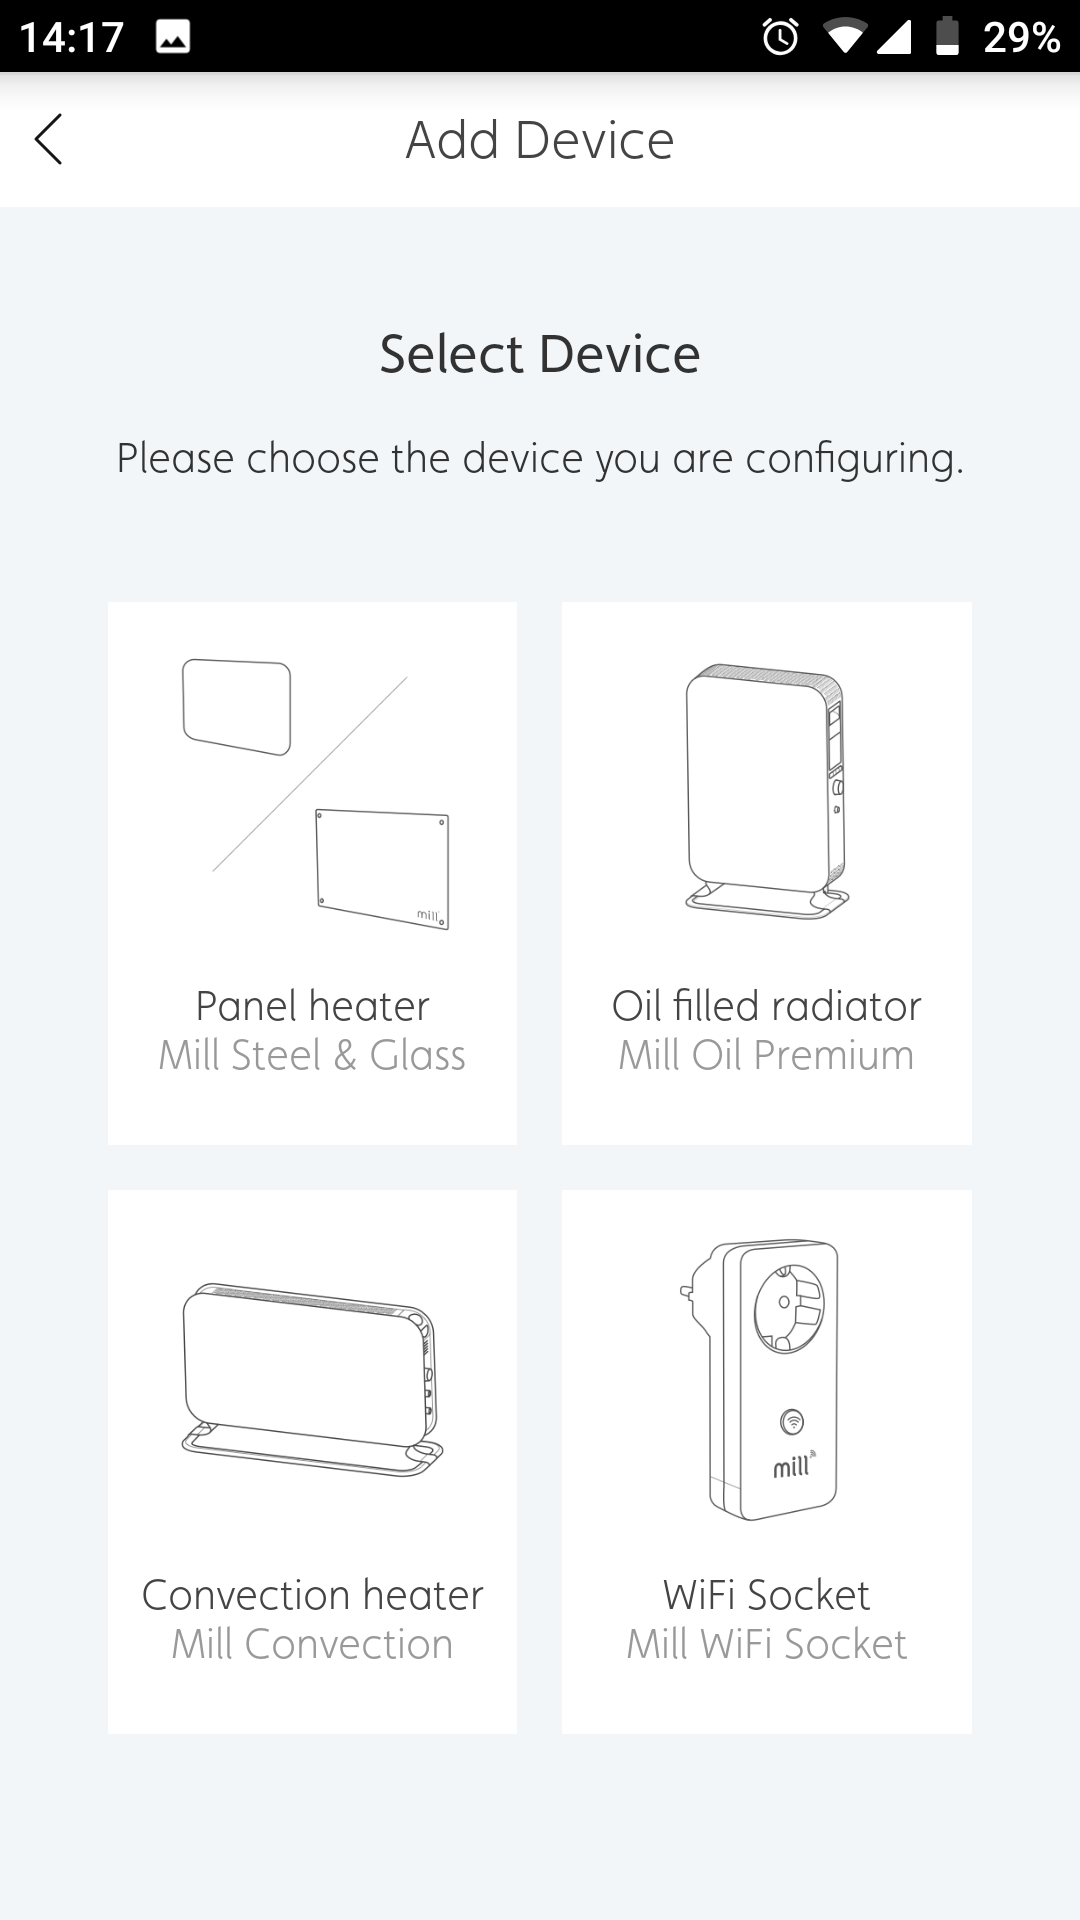 Select your product from the options displayed